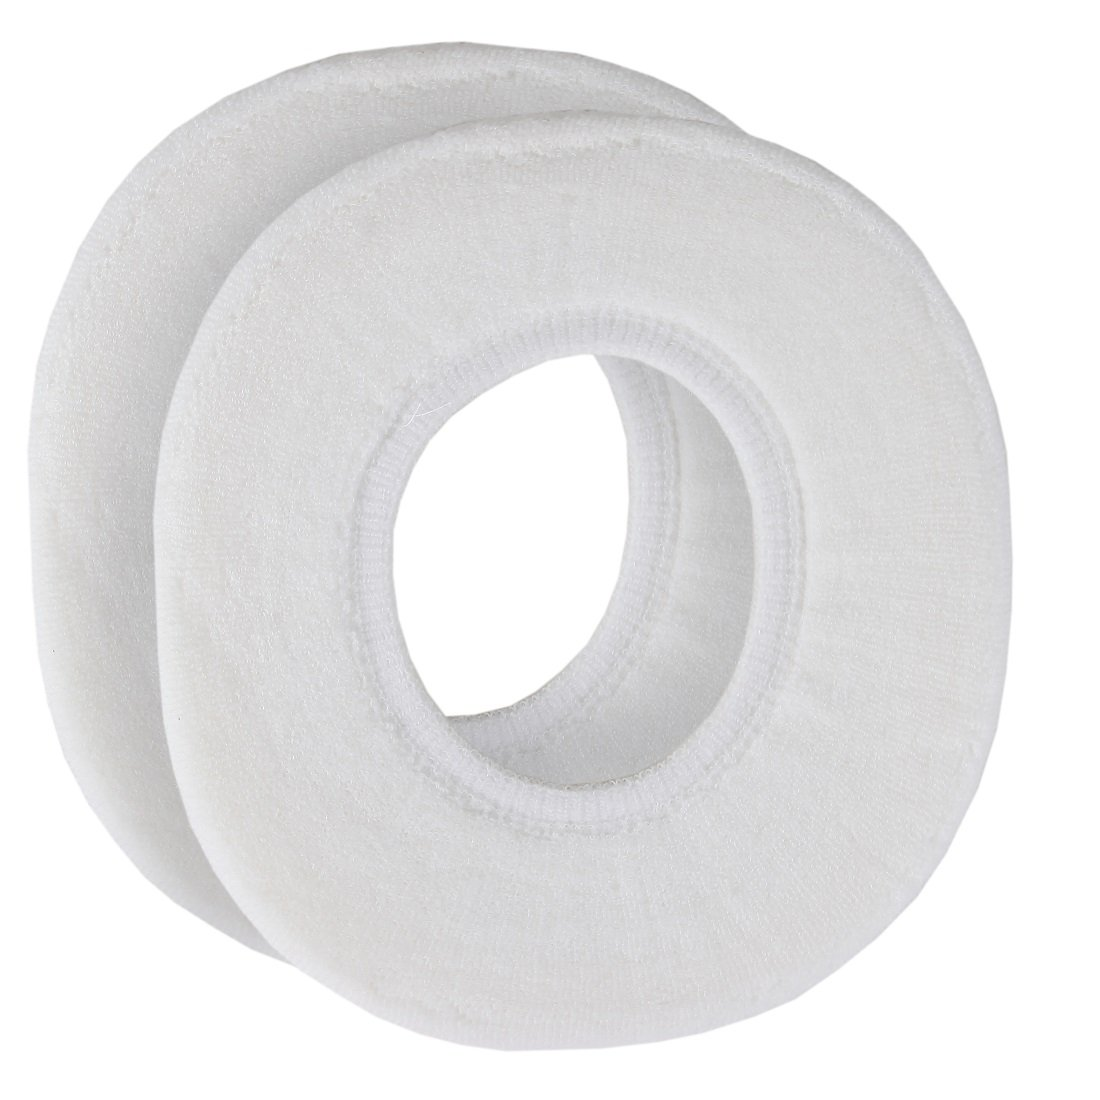 Home-X - Snug and Warm Toilet Seat Cover, Washable and Reusable Cover for Men and Women of All Ages, White (Set of 2) by Home-X